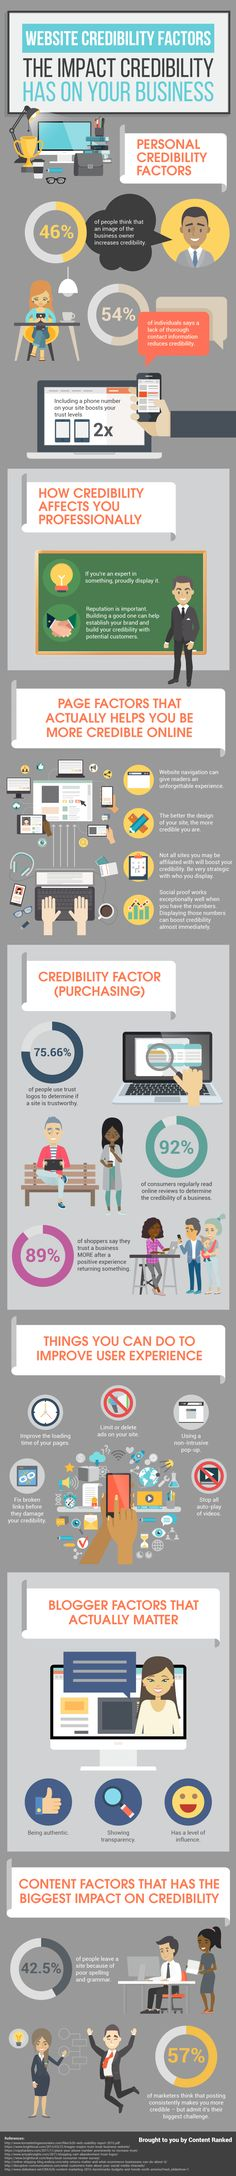 Website Credibility Factors: The Impact Credibility Has On Your Business #Infographic #Business #Website